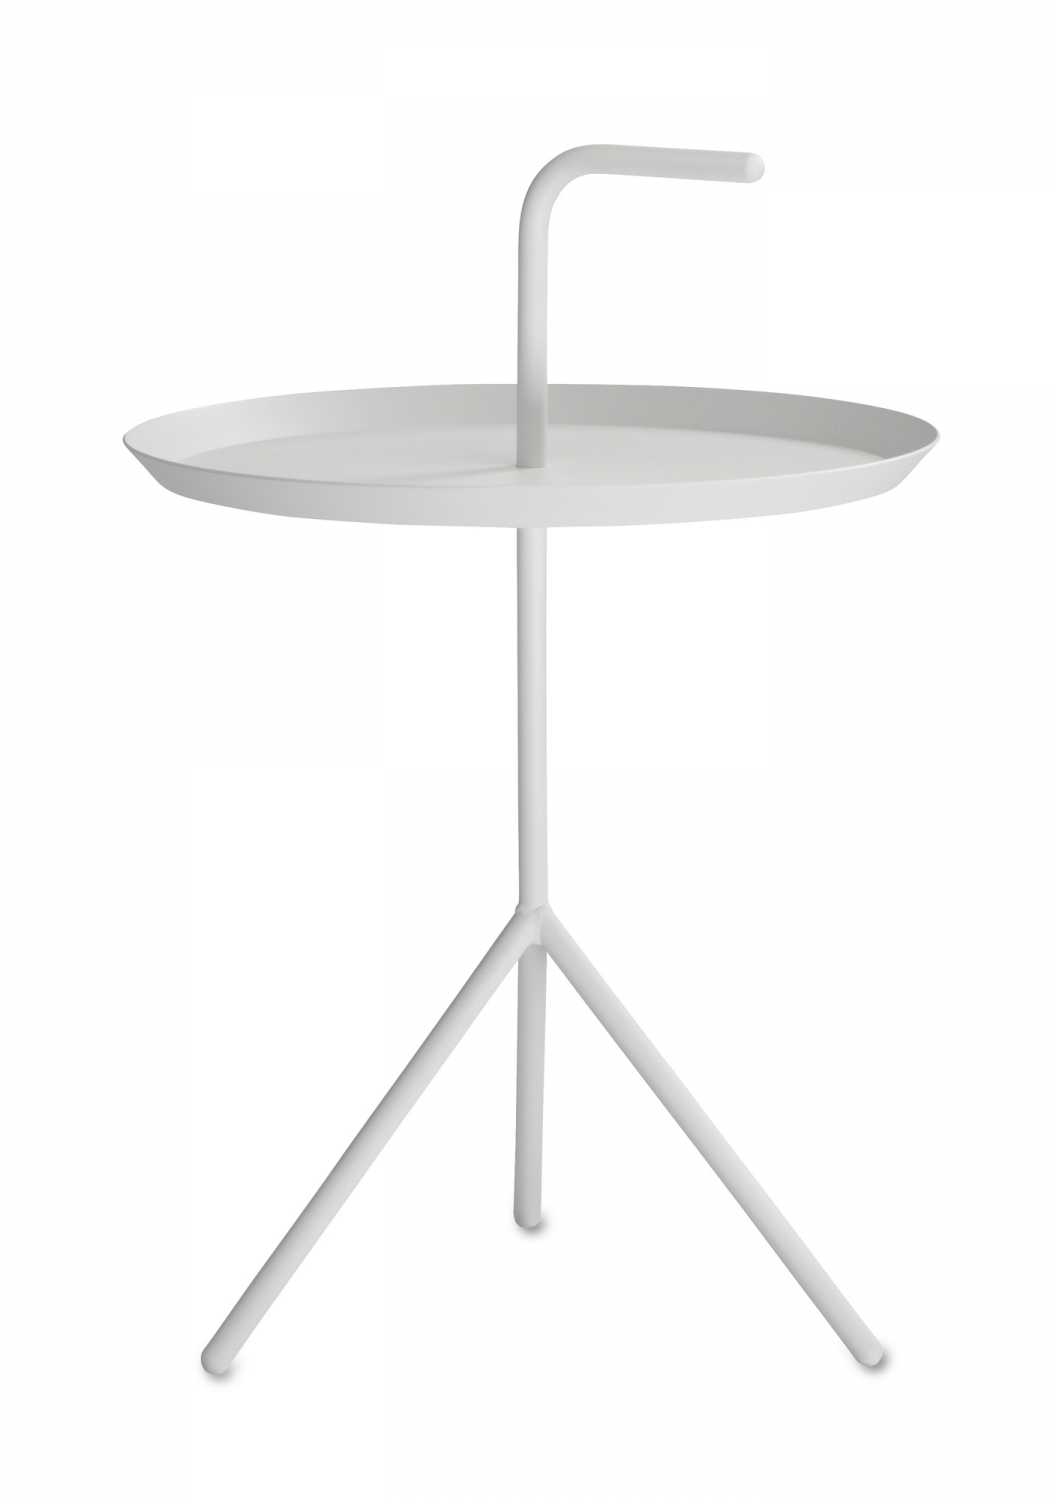 HAY -DLM Table - White